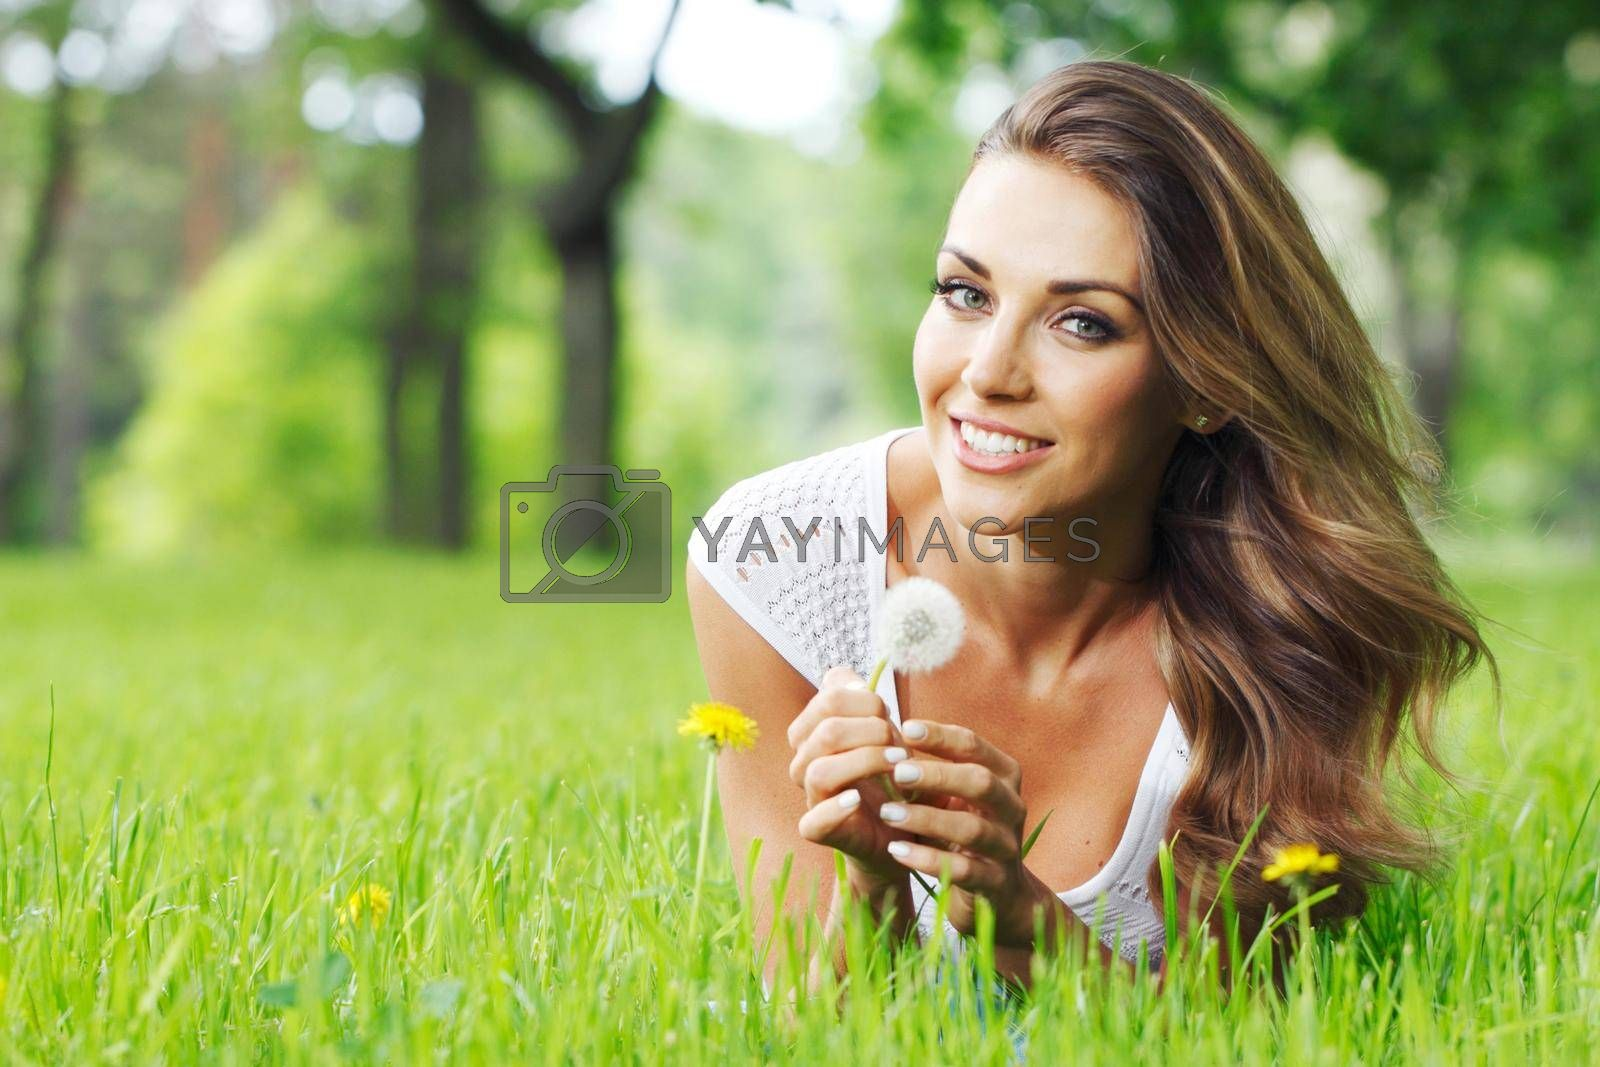 Royalty free image of Woman lay in park with dandelion by Yellowj